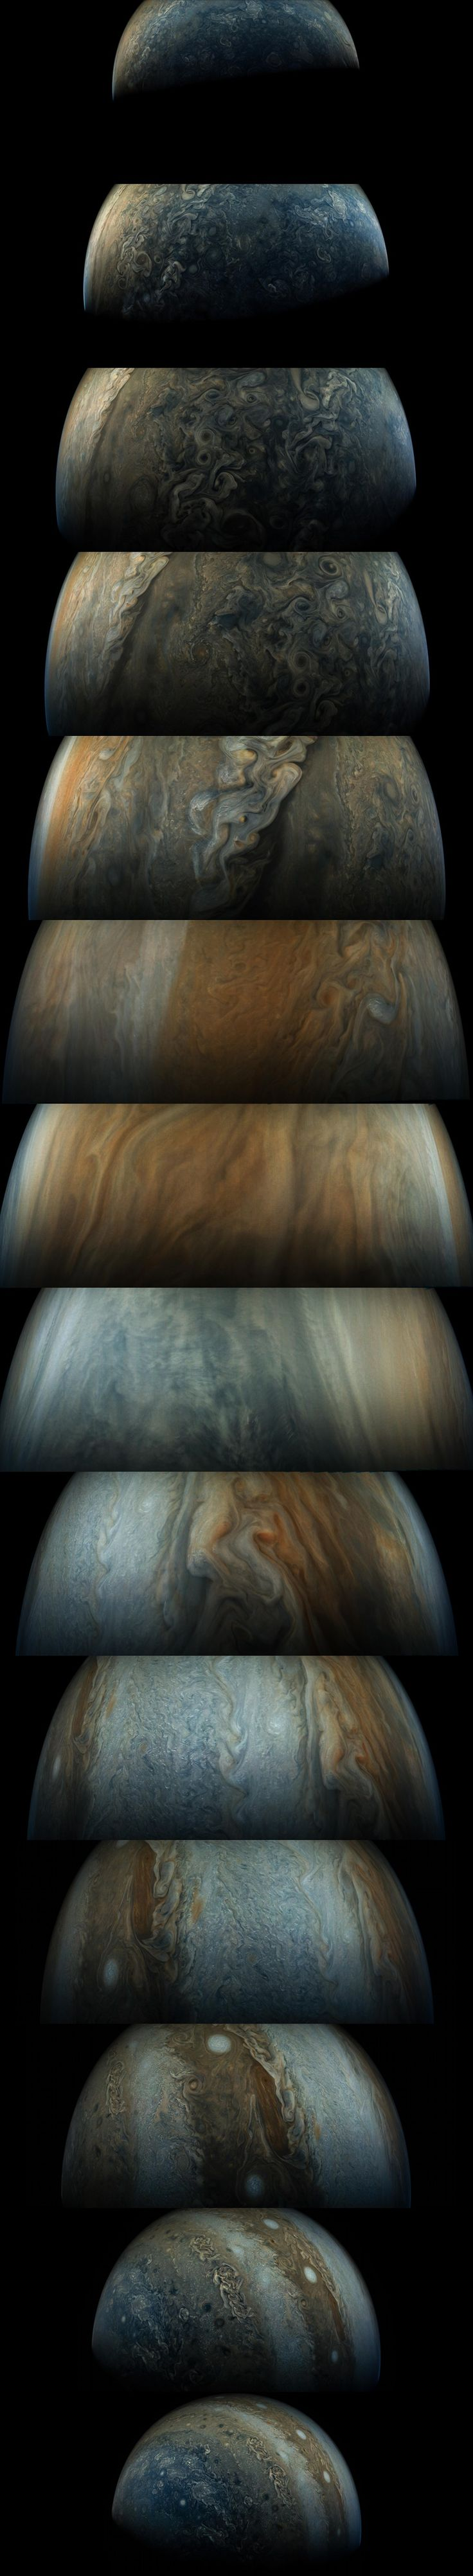 On May 19, the Juno spacecraft once again swung by Jupiter in its looping 53 day orbit around the Solar System's ruling gas gaint.    Beginning at the top, this vertical  14 frame sequence of enhanced-color  JunoCam images follows the spacecraft's rapidly changing perspective during its two hour passage.